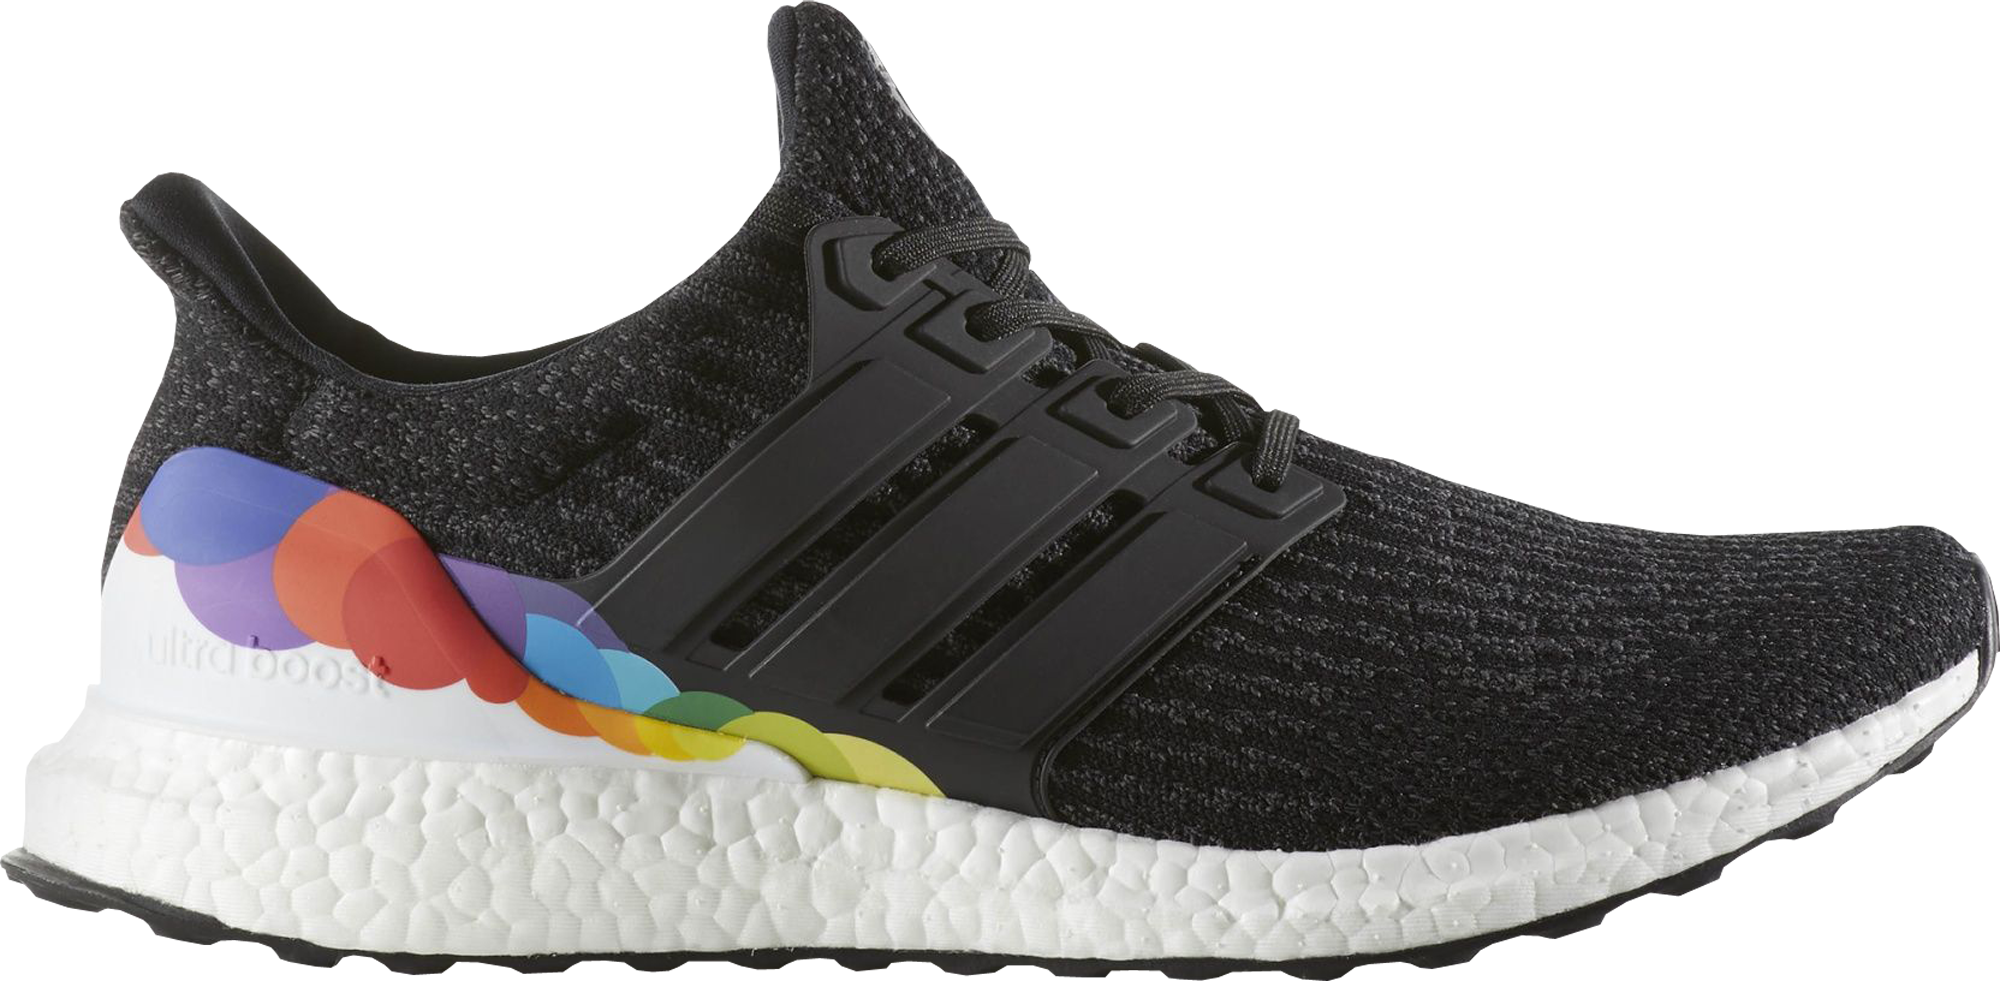 1a3c5ed843e6 ... coupon for adidas ultra boost 3.0 lgbt pride e09ea 699ba